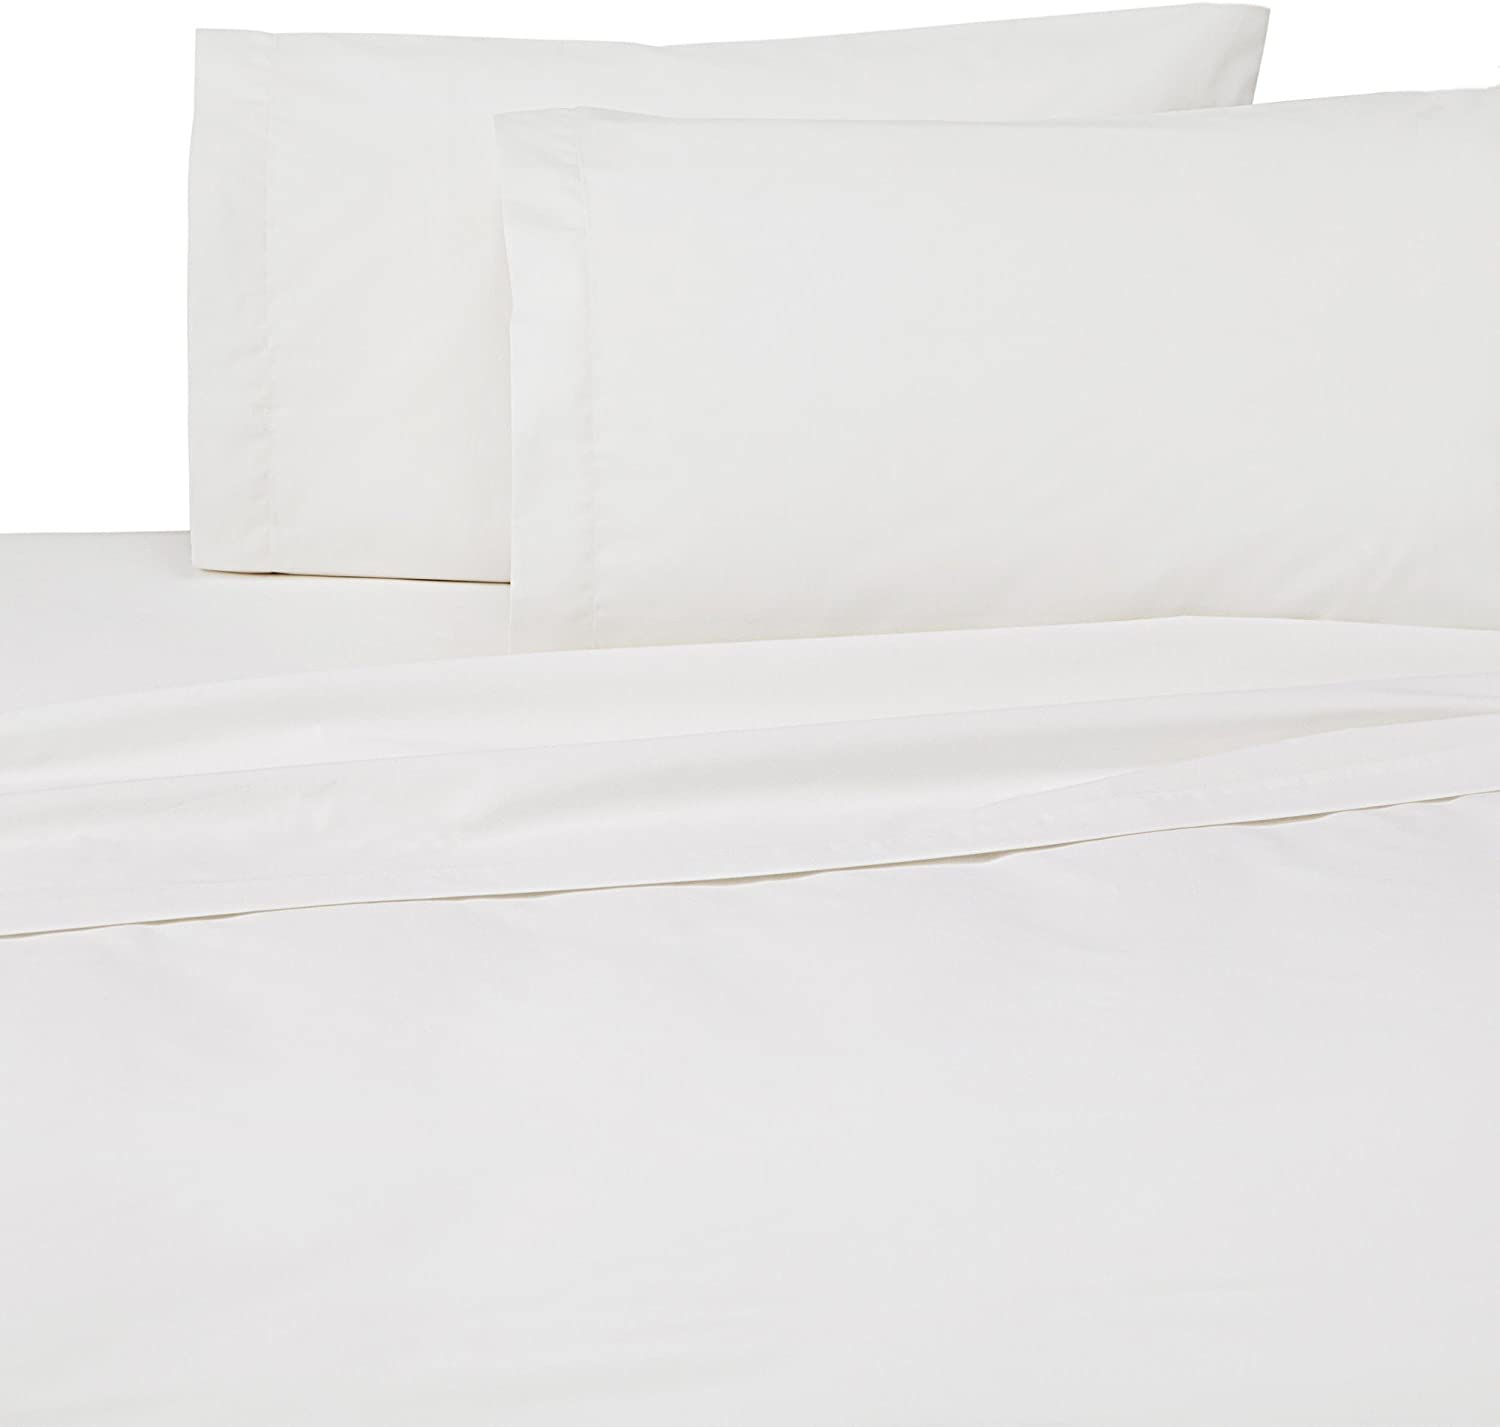 White 72-Pack WestPoint Home Martex 1A69391 Classic Touch T200 Pillowcase 42-Inch x 46-Inch